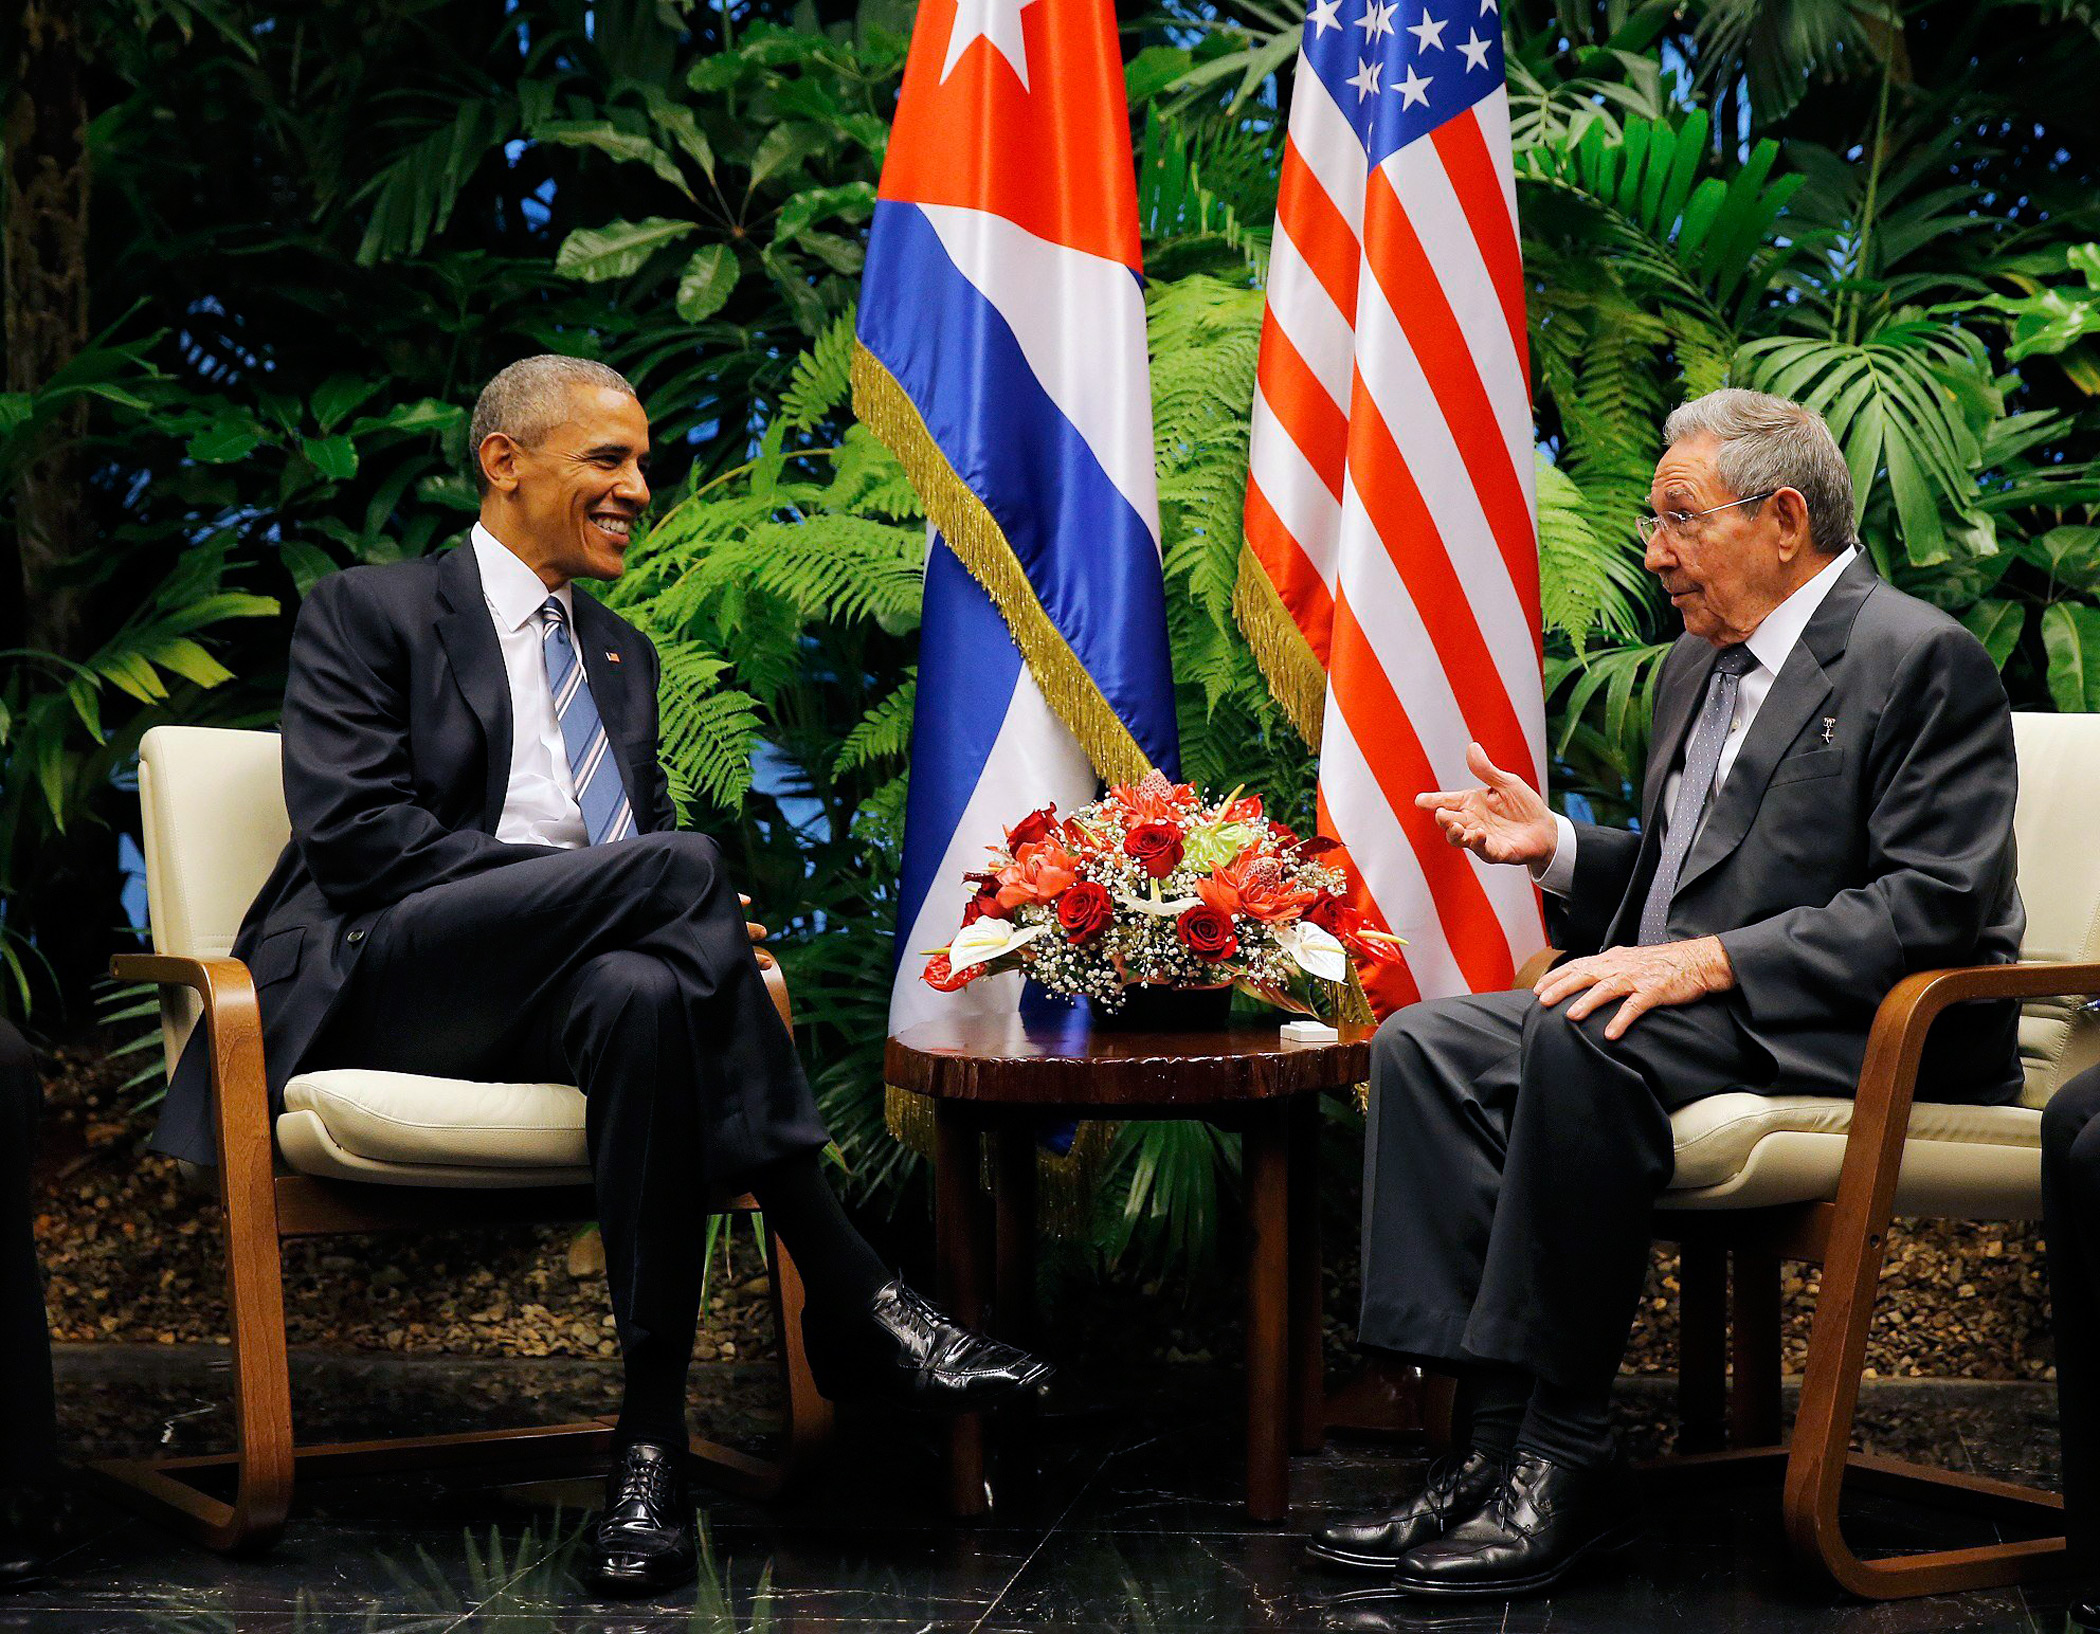 U.S. President Barack Obama and Cuba's President Raul Castro hold their first meeting of Obama's visit to Cuba on  March 21, 2016.